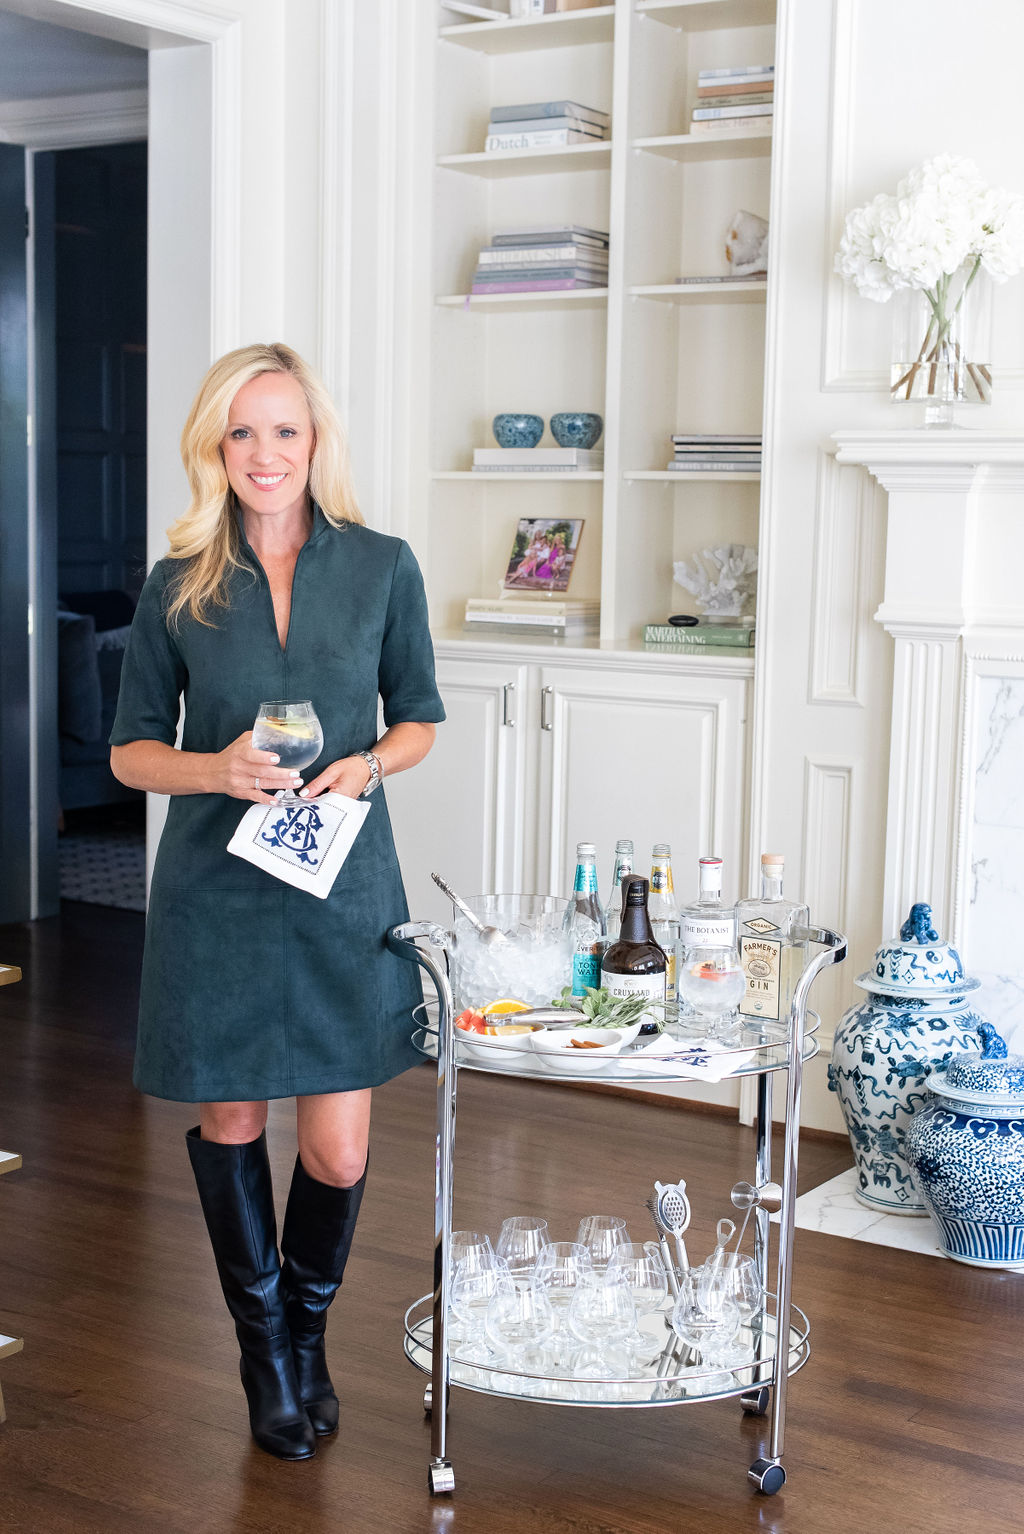 South African Gin and Tonic, Tuckernuck Green Ultra Suede Dress, Classic Bar Cart, Alicia Wood, Dallas Lifestyle Expert, Dallas Fashion Blogger, Dallas Hostess